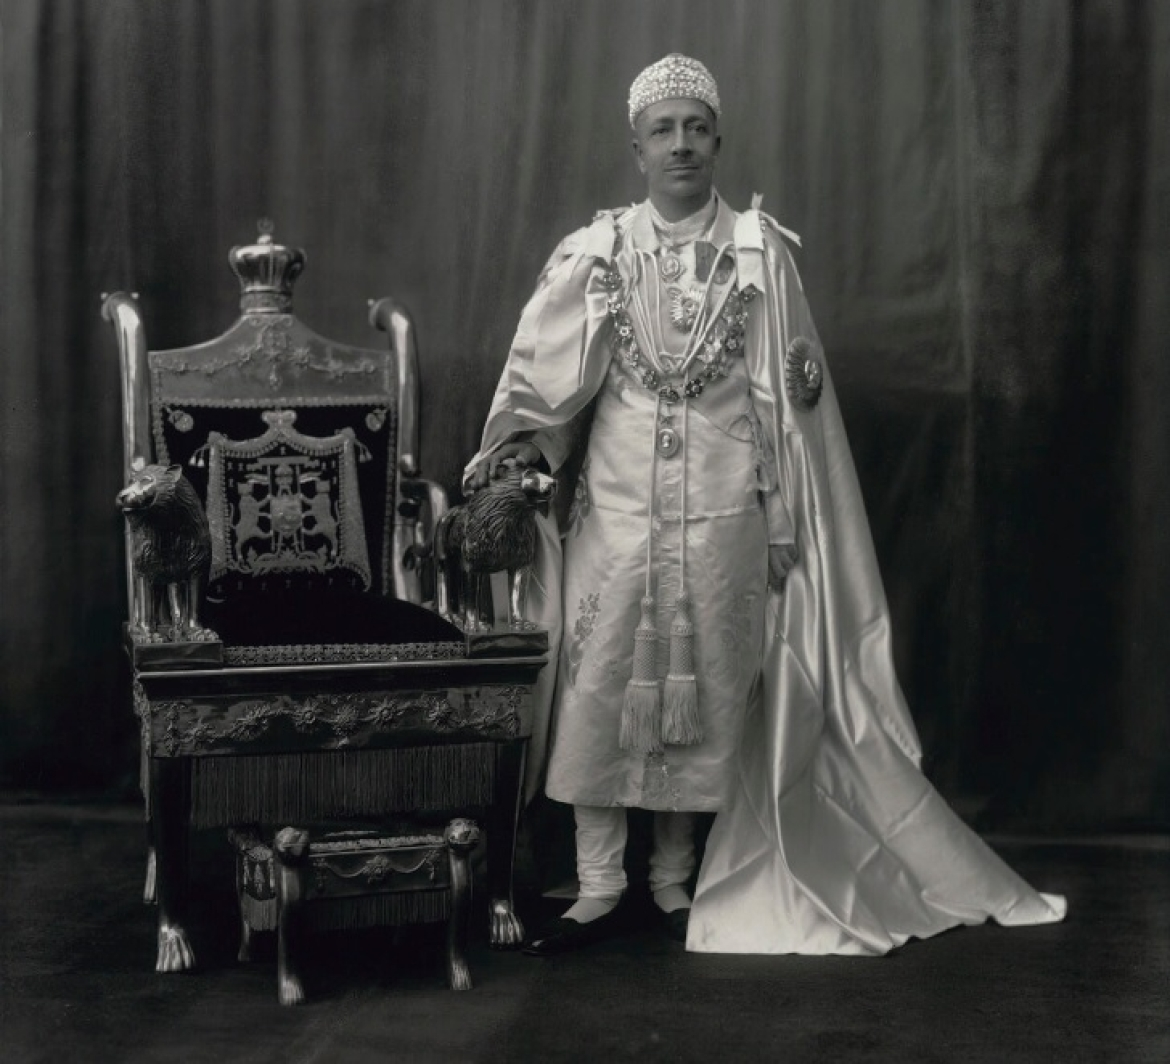 Nawab Hamid Ali Khan with the gold throne, and wearing a Golconda diamond studded cap